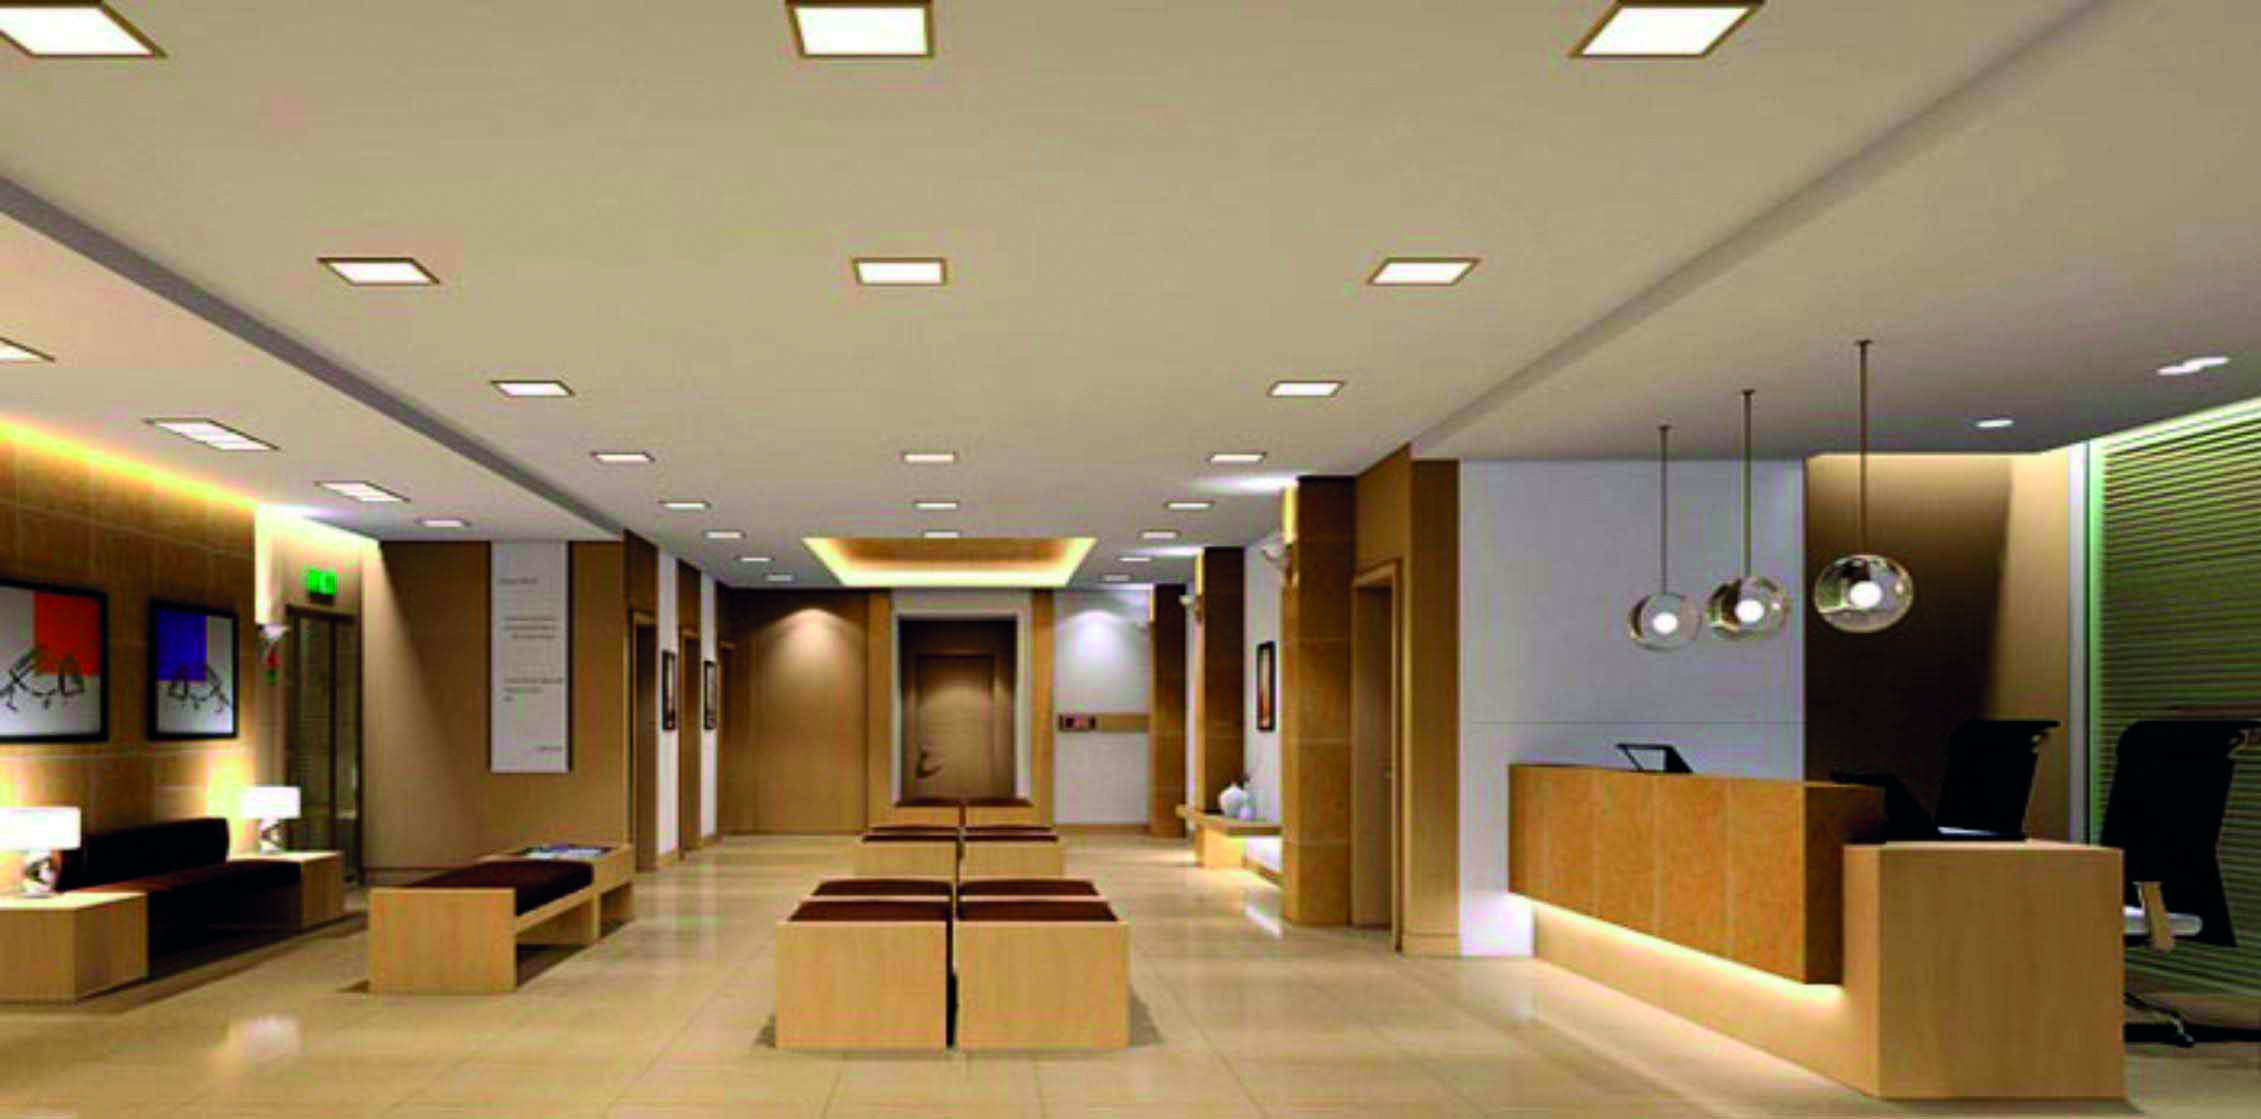 Foco Cuadrado Led Panel Led Cuadrado Iluminación Interior | Venta Panel Led